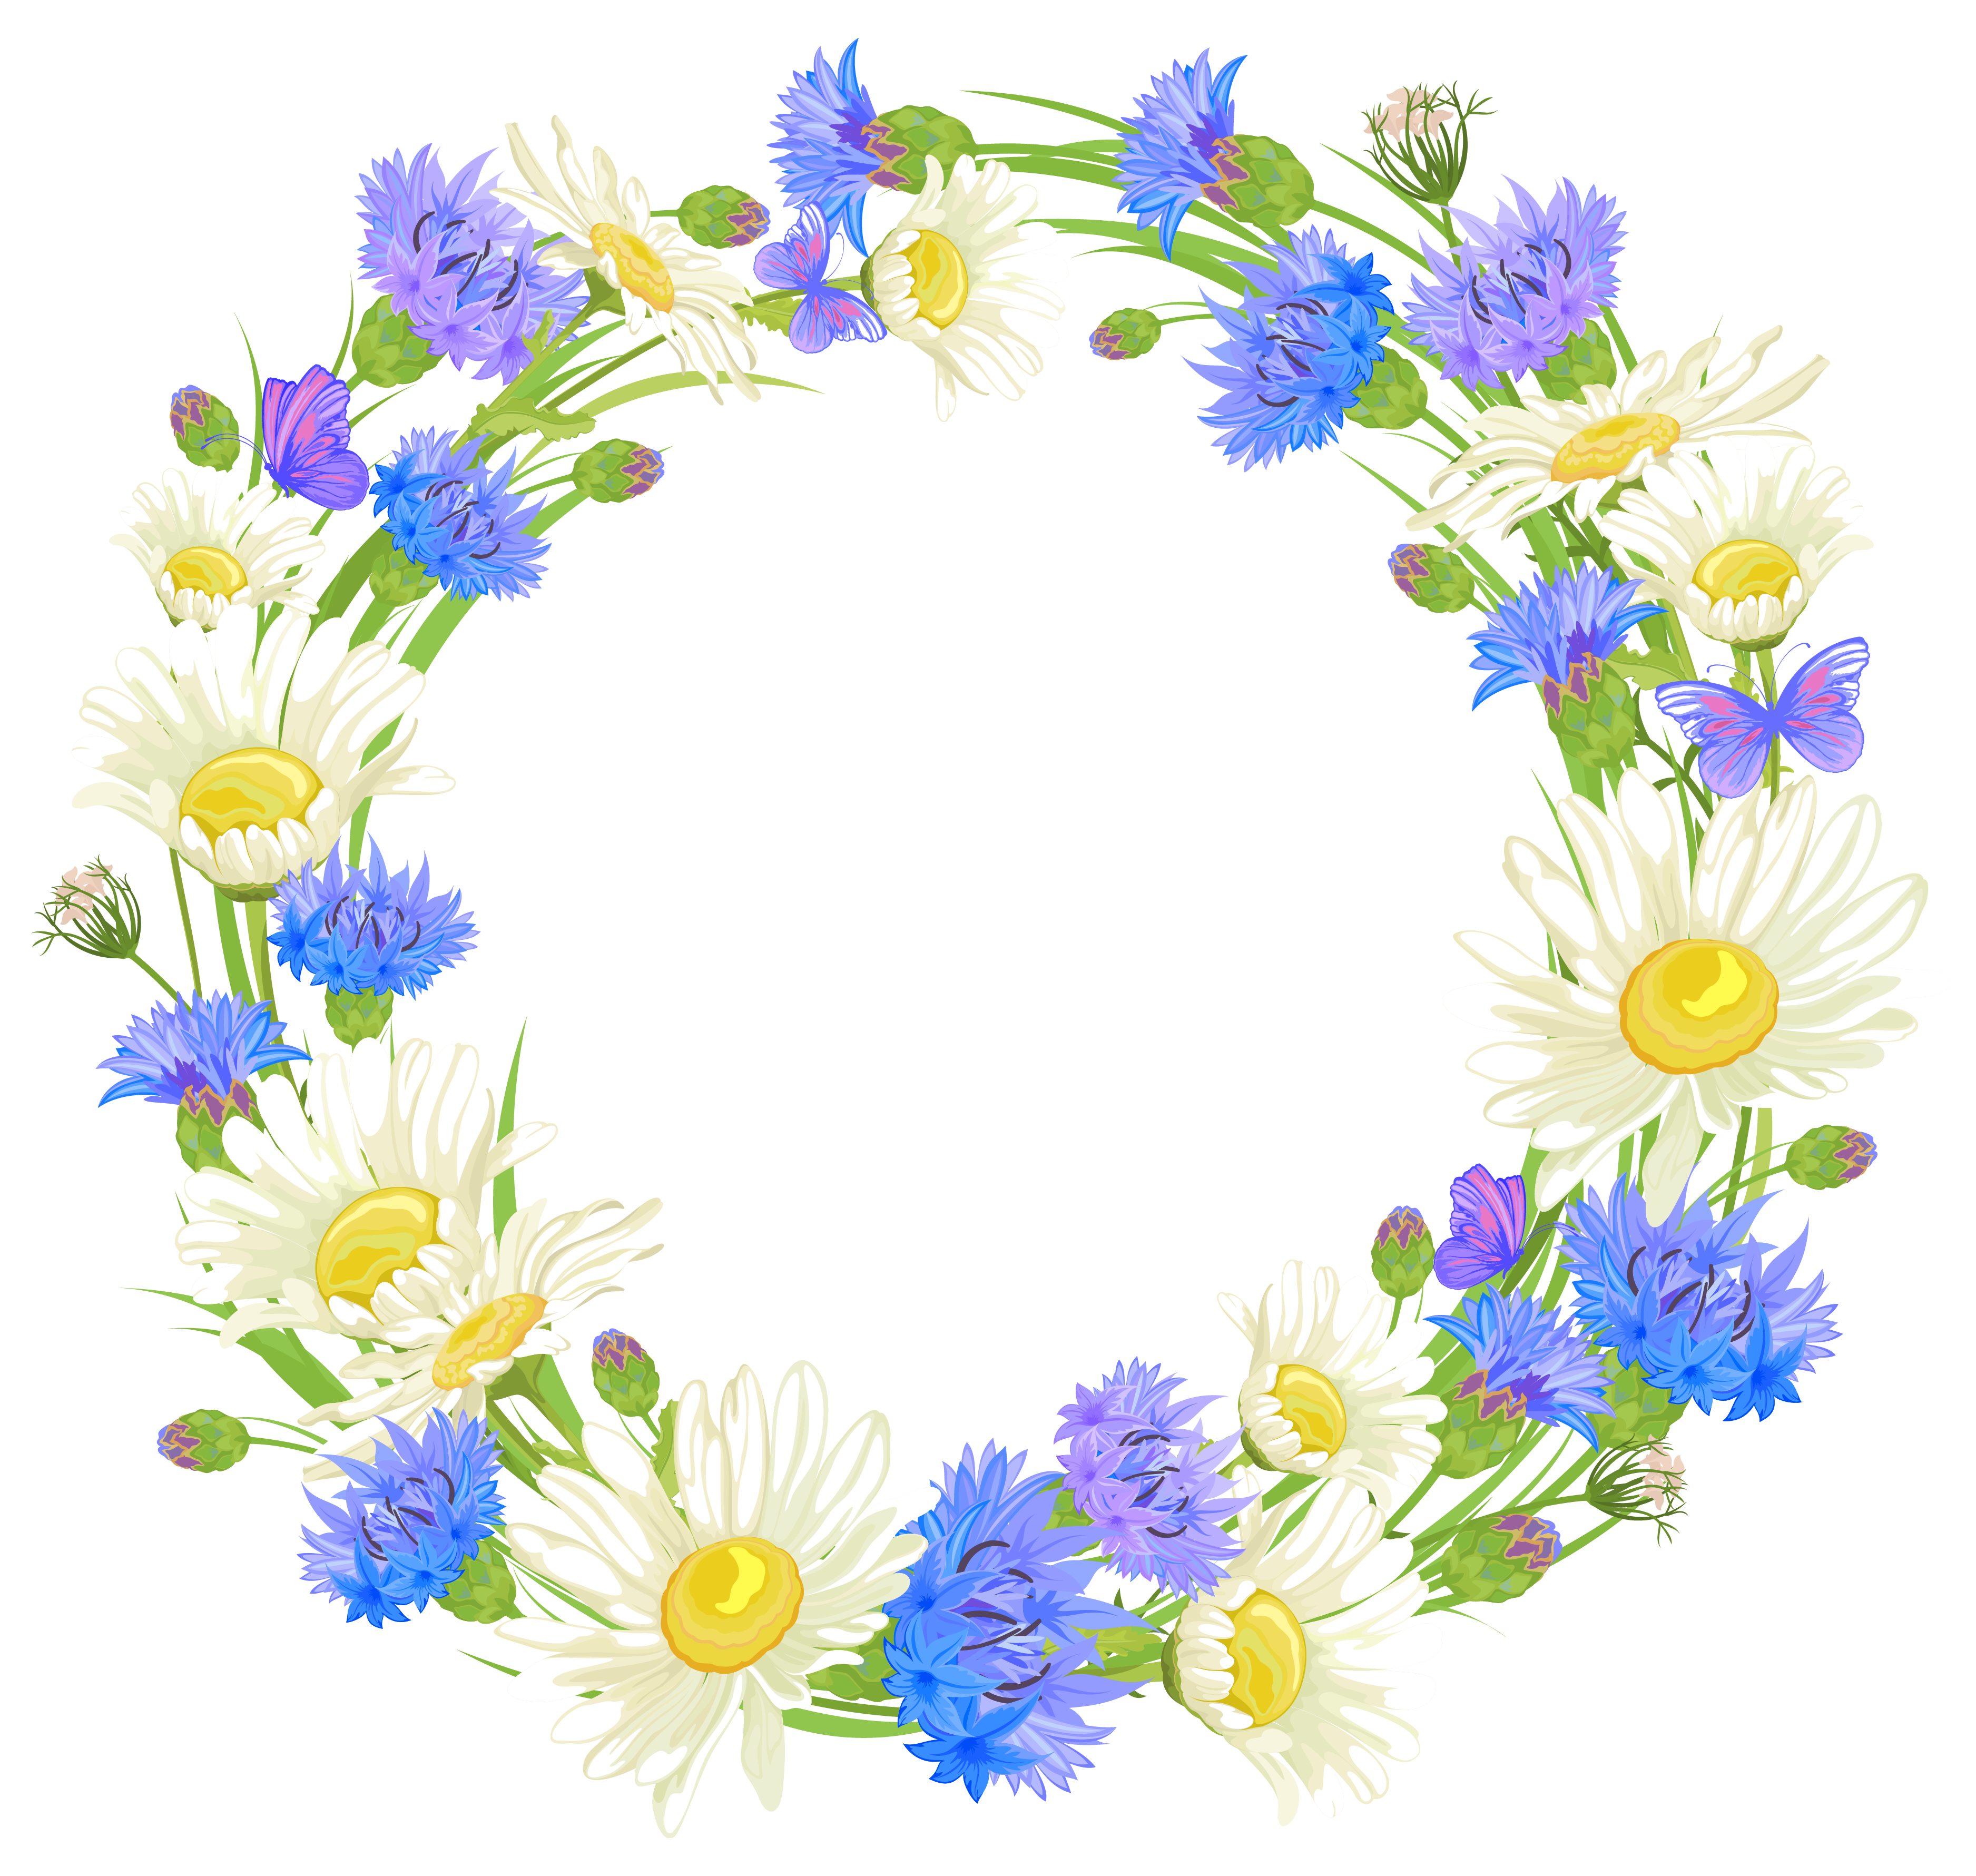 Flower wreath clipart png jpg freeuse stock Wreath of flower clipart - ClipartFest jpg freeuse stock